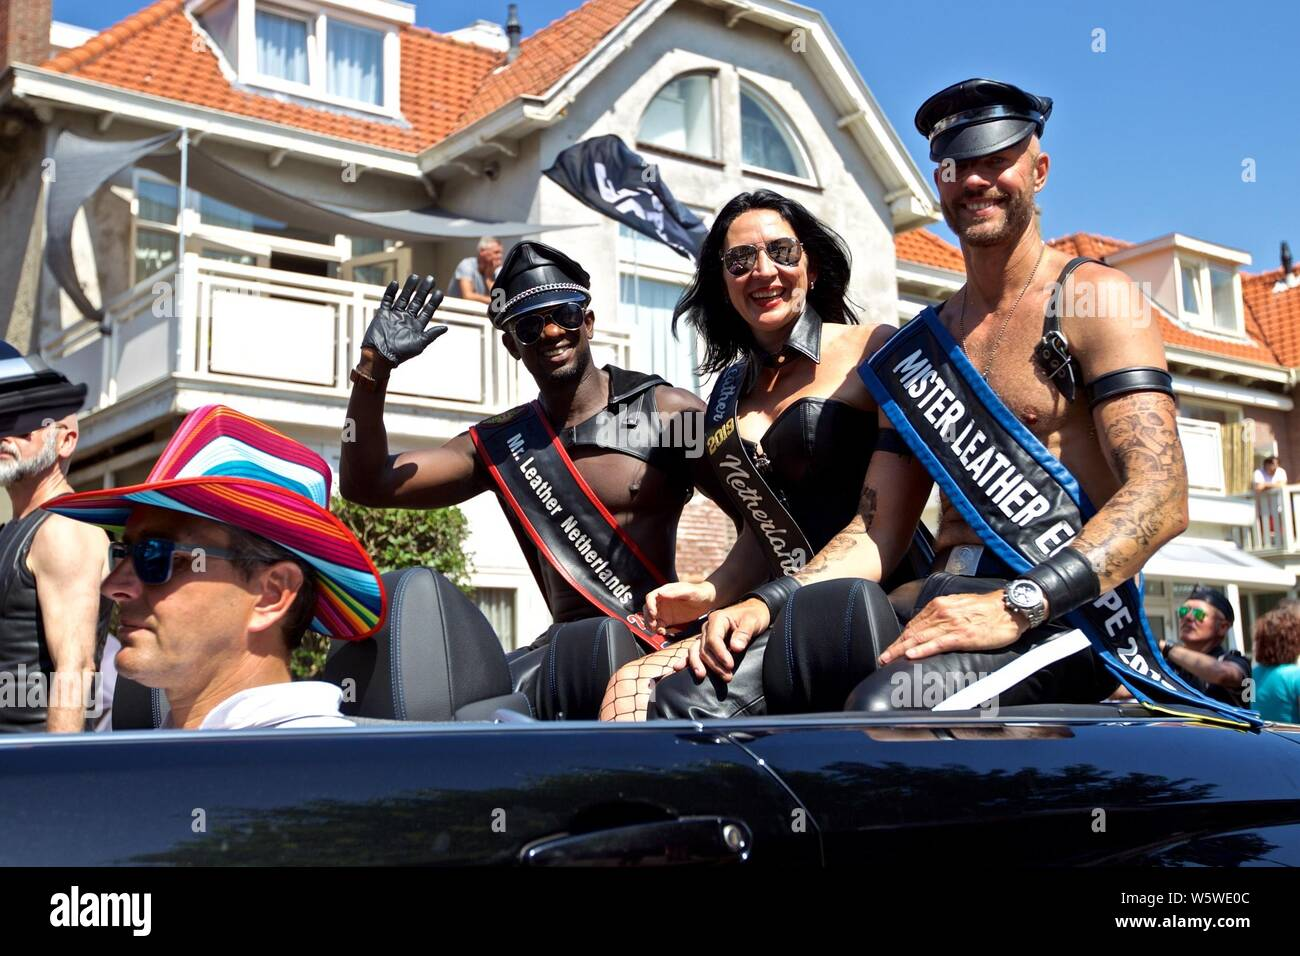 "(190730) -- THE HAGUE, July 30, 2019 (Xinhua) -- People attend the third edition of the ""Pride at the Beach"" parade in Zandvoort, the Netherlands, July 29, 2019. (Photo by Sylvia Lederer/Xinhua) Stock Photo"